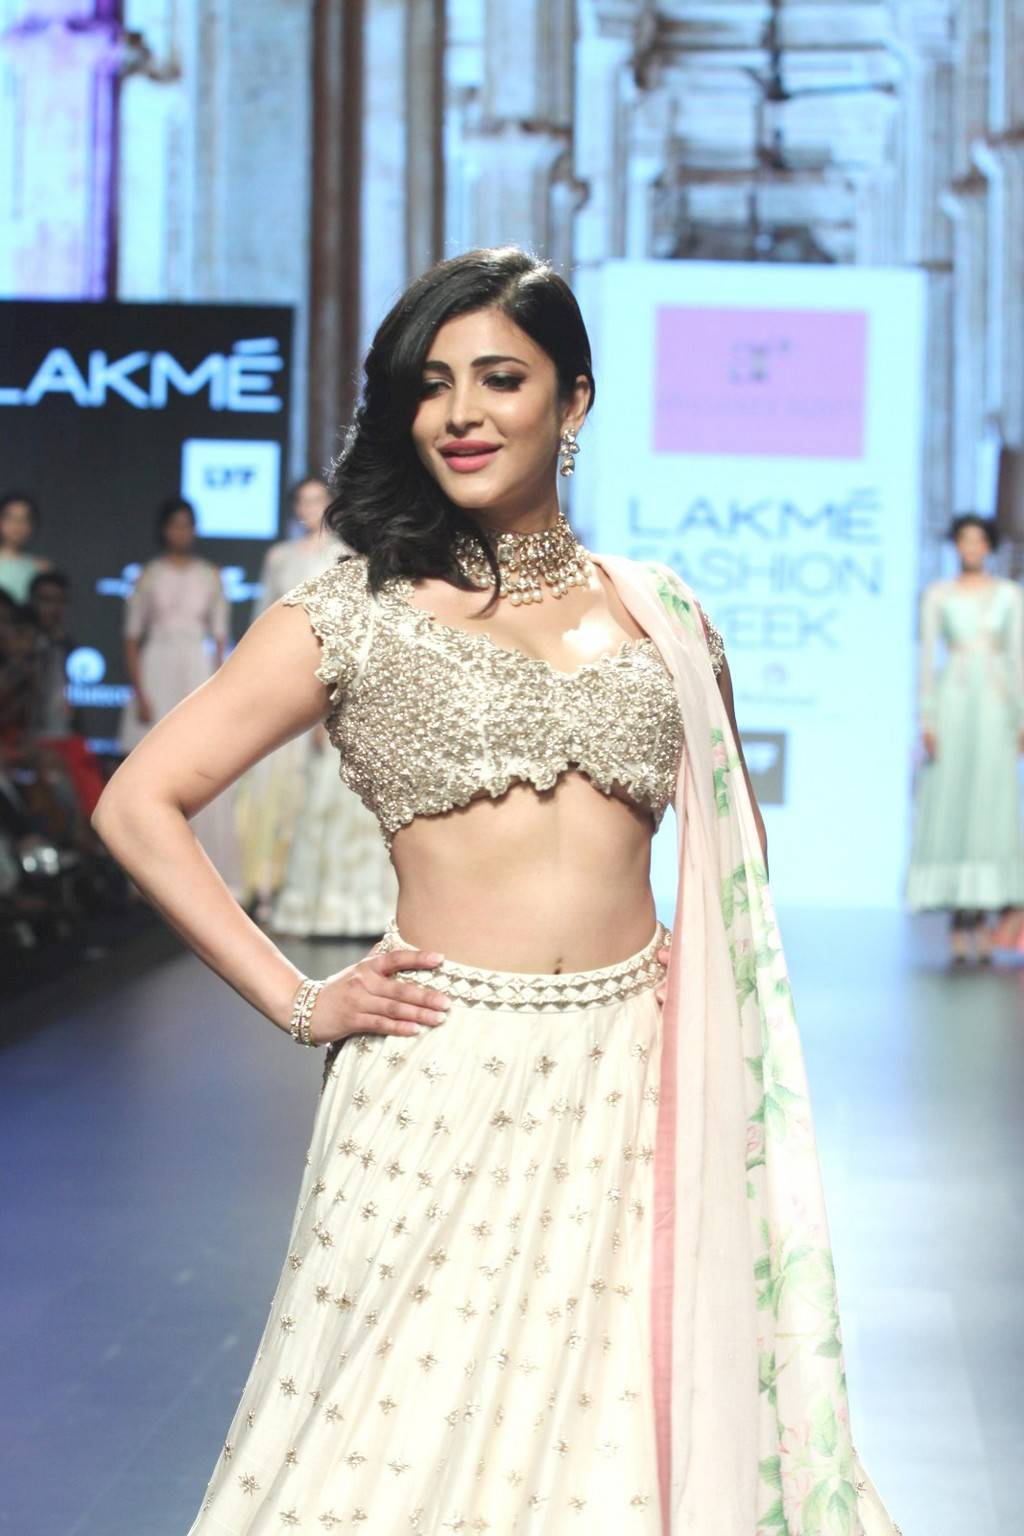 Shruti Haasan Navel Show Photos At Lakme Fashion Week